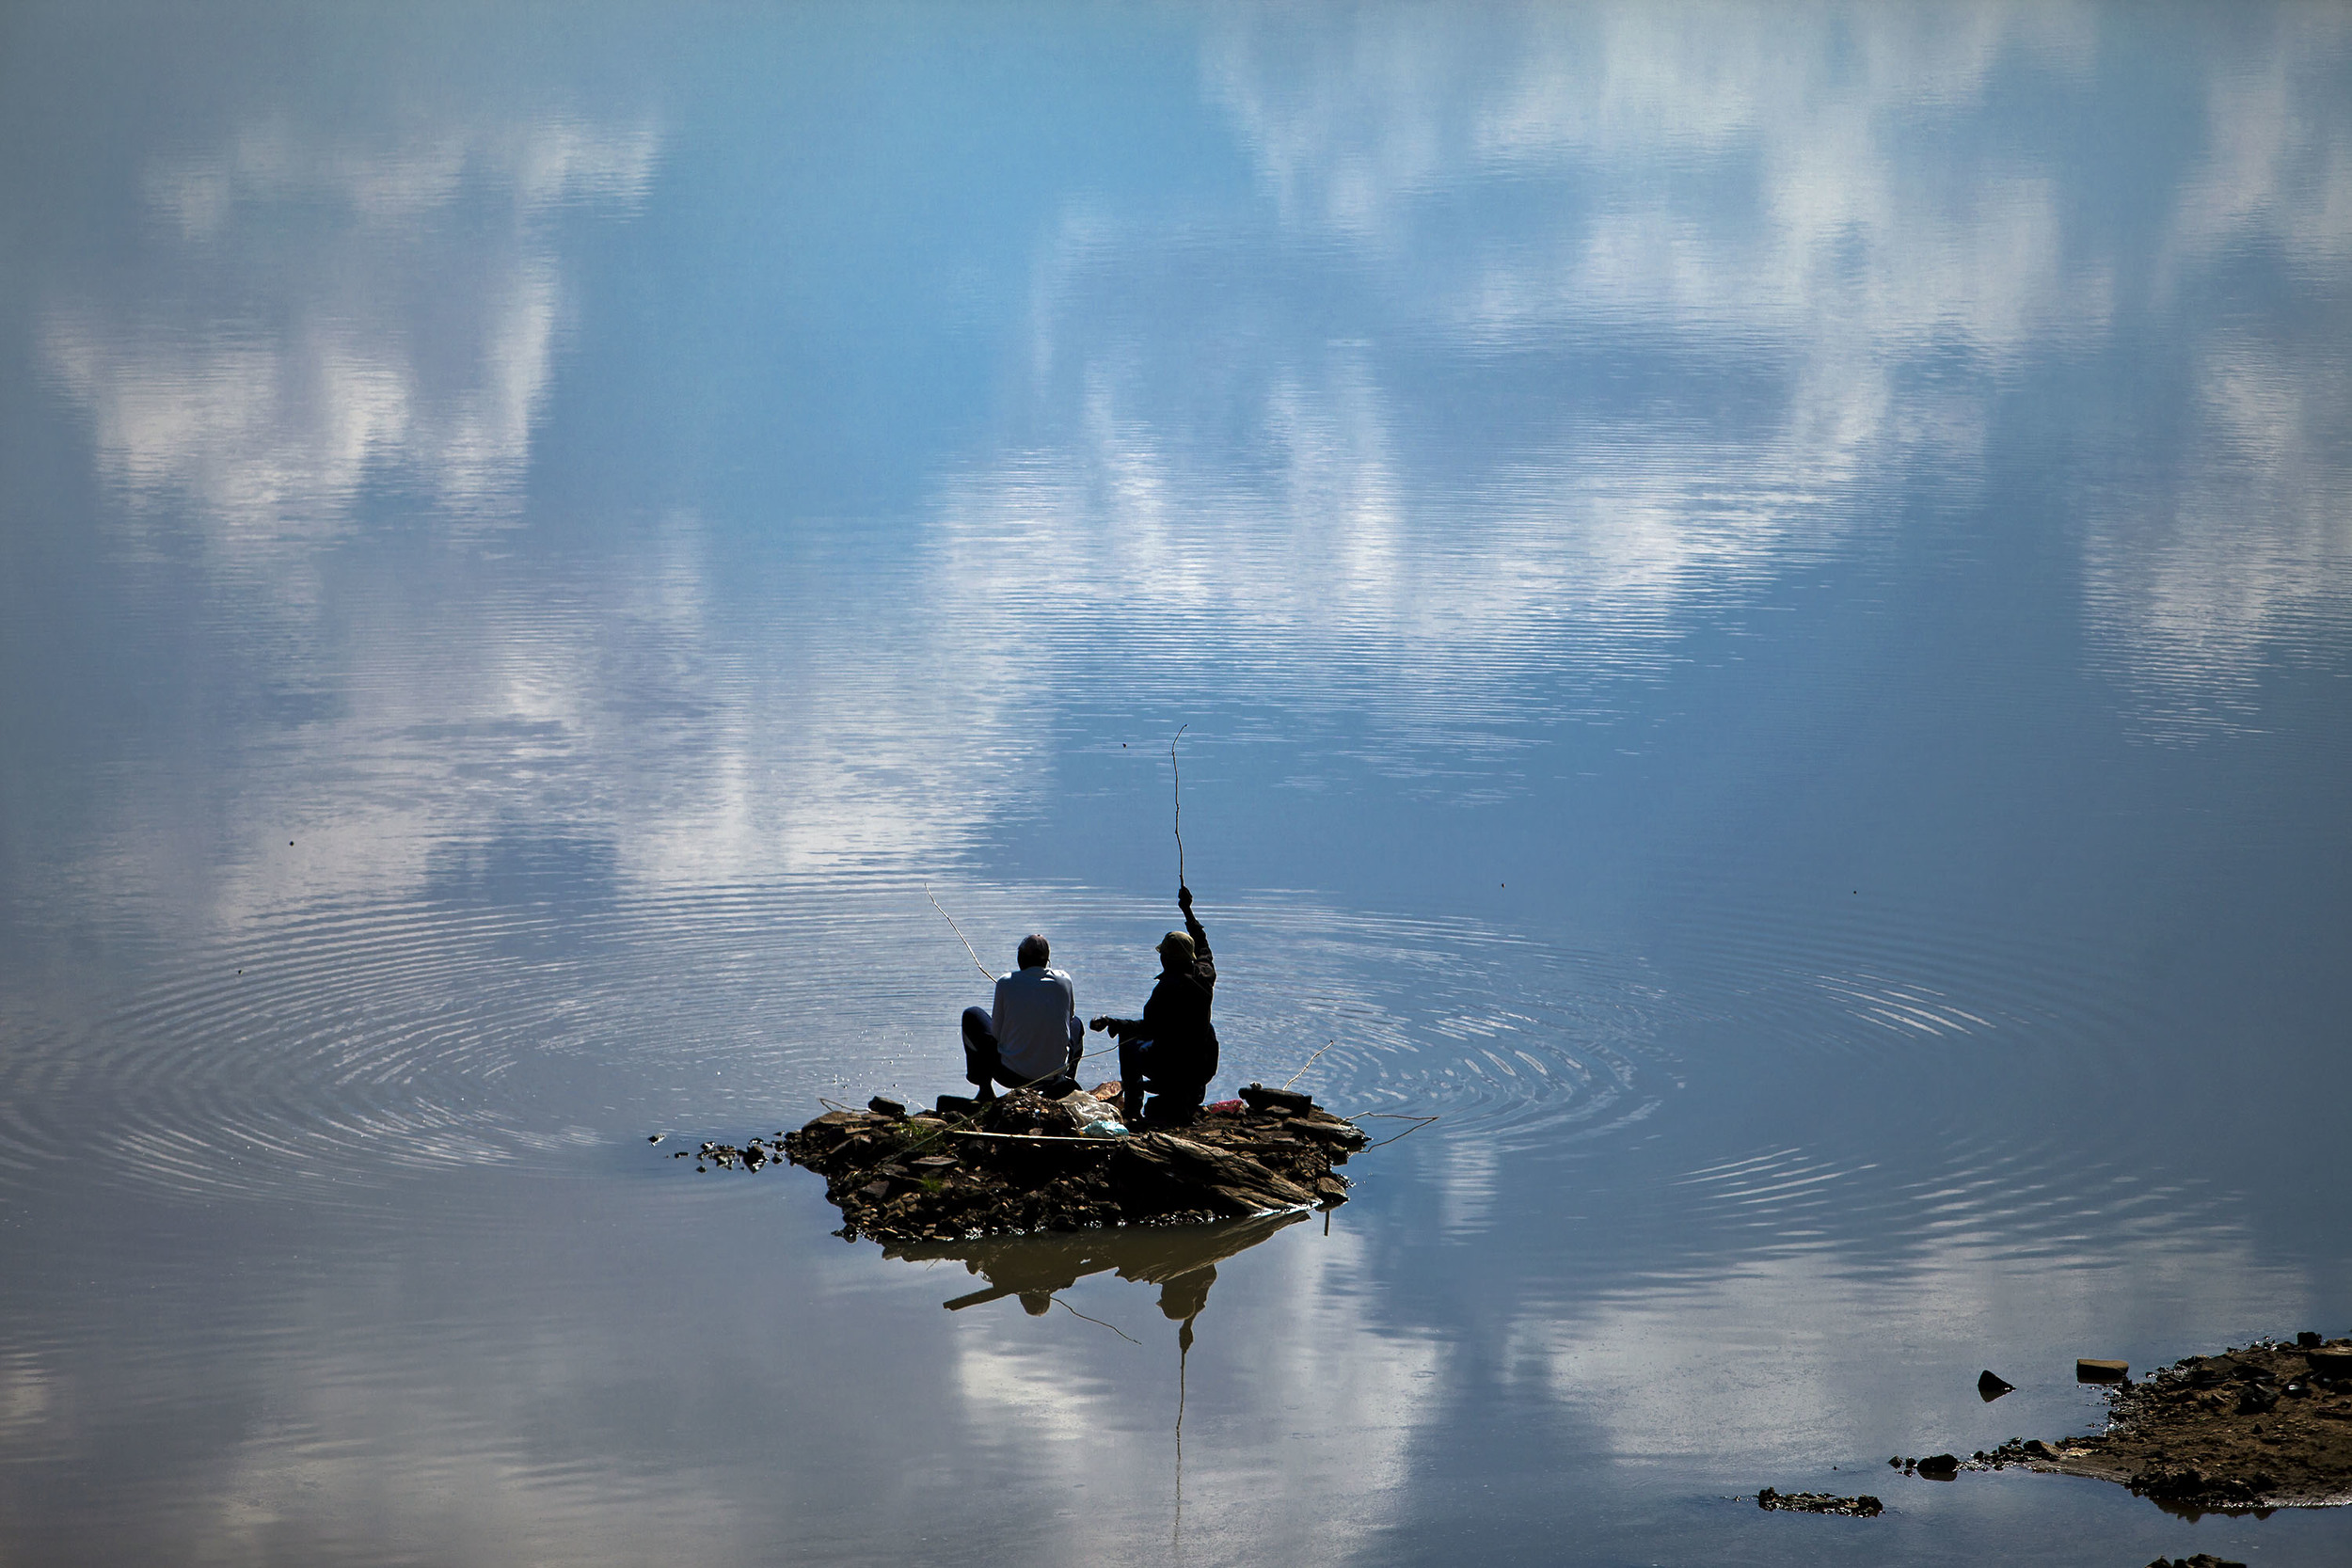 Fishermen at a lake in Limpopo, South Africa.